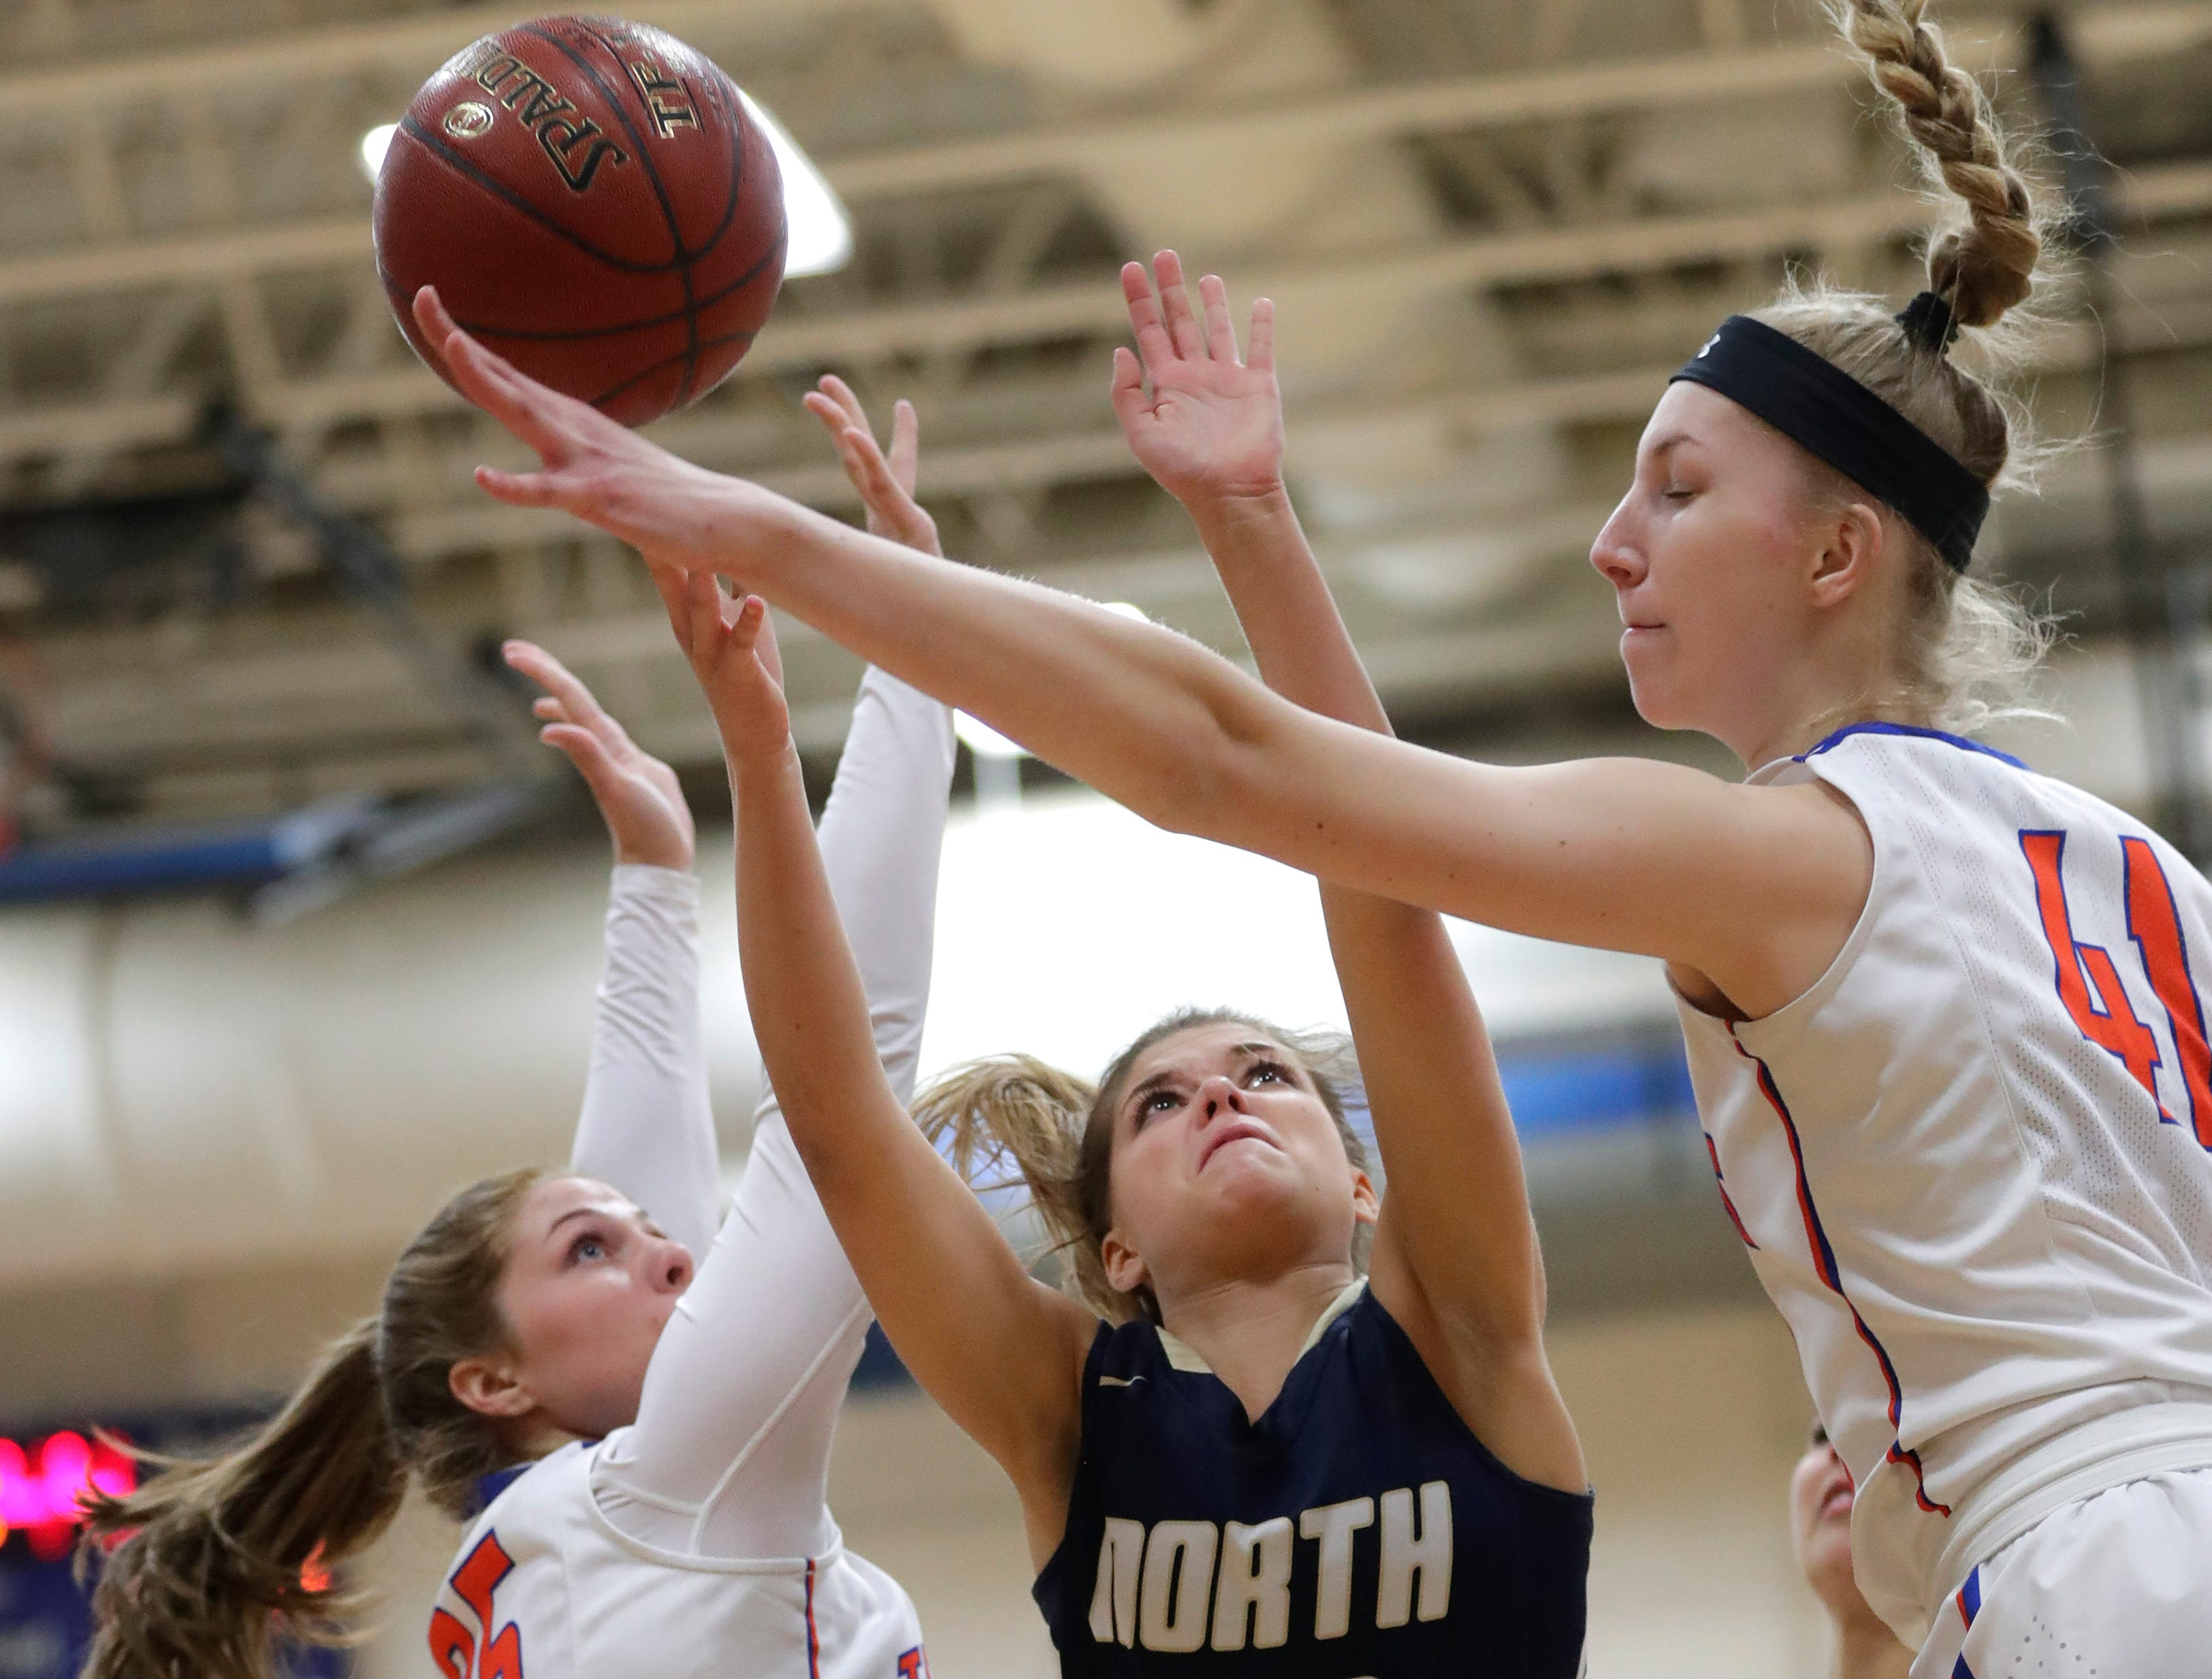 Appleton West High School's Sydney Gehl (35) and Taylor Lauterbach (41) defend against Appleton North High School's Anna Laux (10) during their girls basketball game Friday, January 25, 2019, at Appleton West High School in Appleton, Wis. 